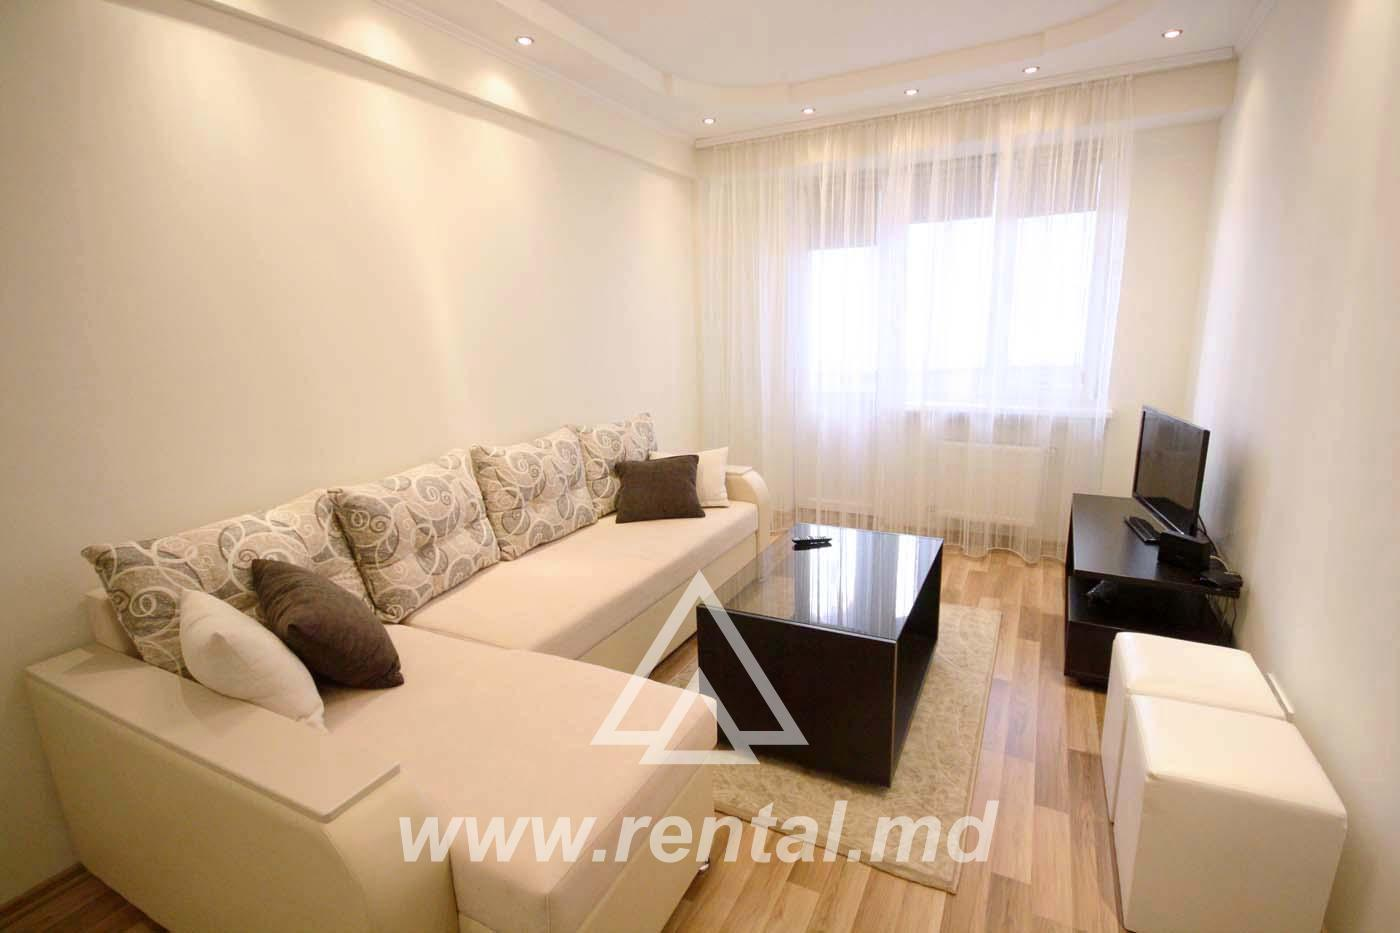 2 rooms apartment in a new block of flats in the center